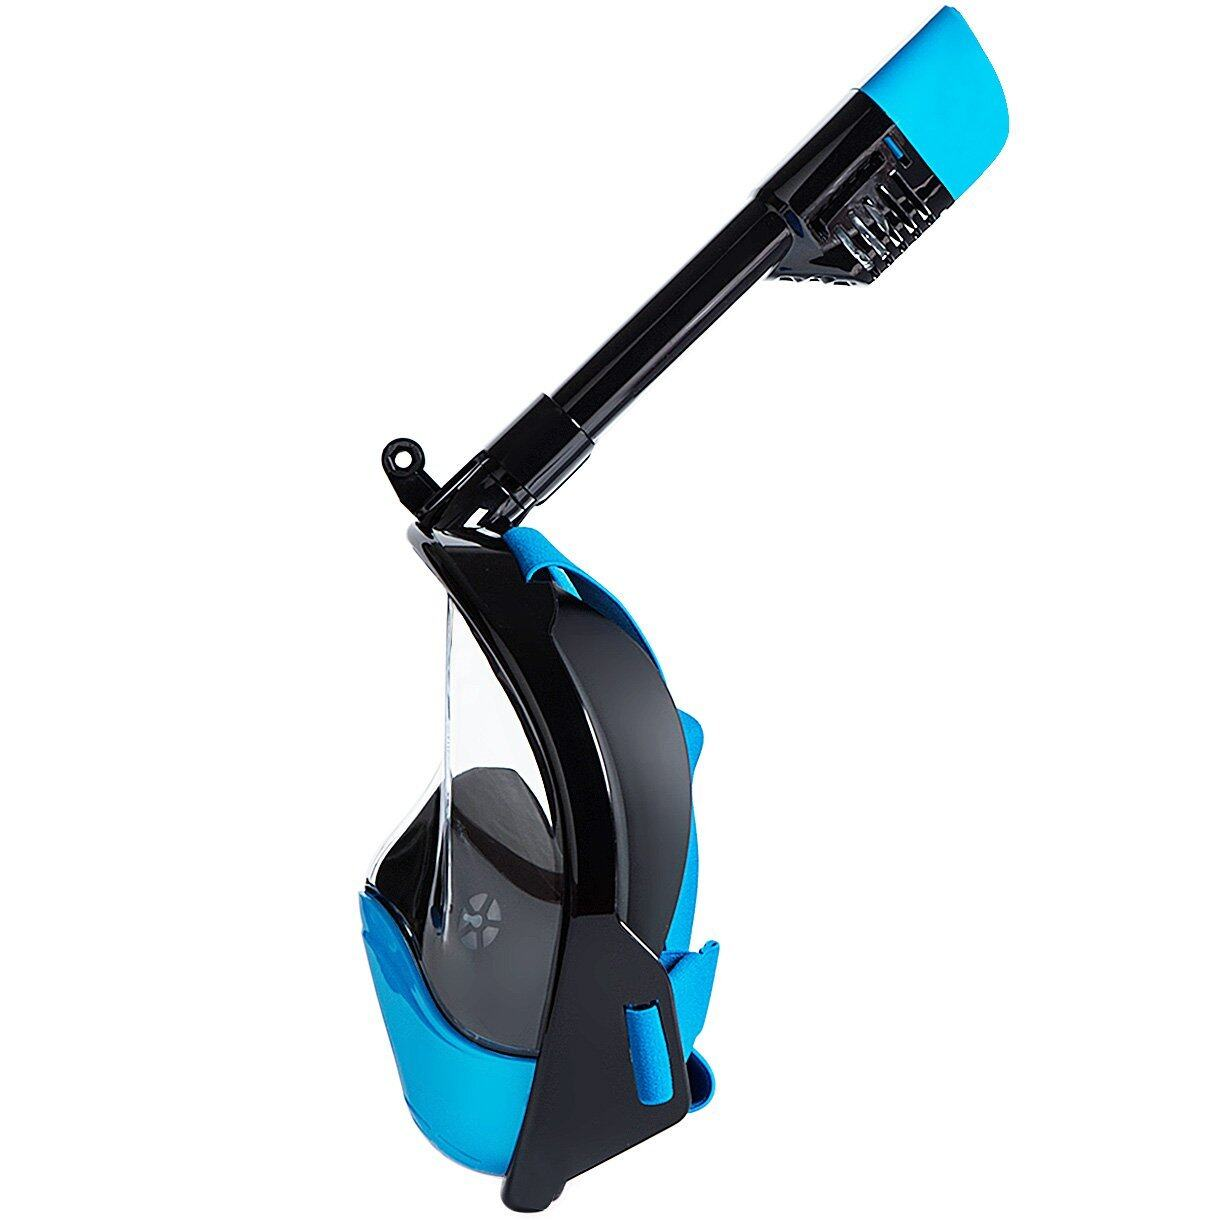 HELLOYEE Full Face Snorkel Mask 180° Panoramic View Breathe Free For Adults And Kids 5